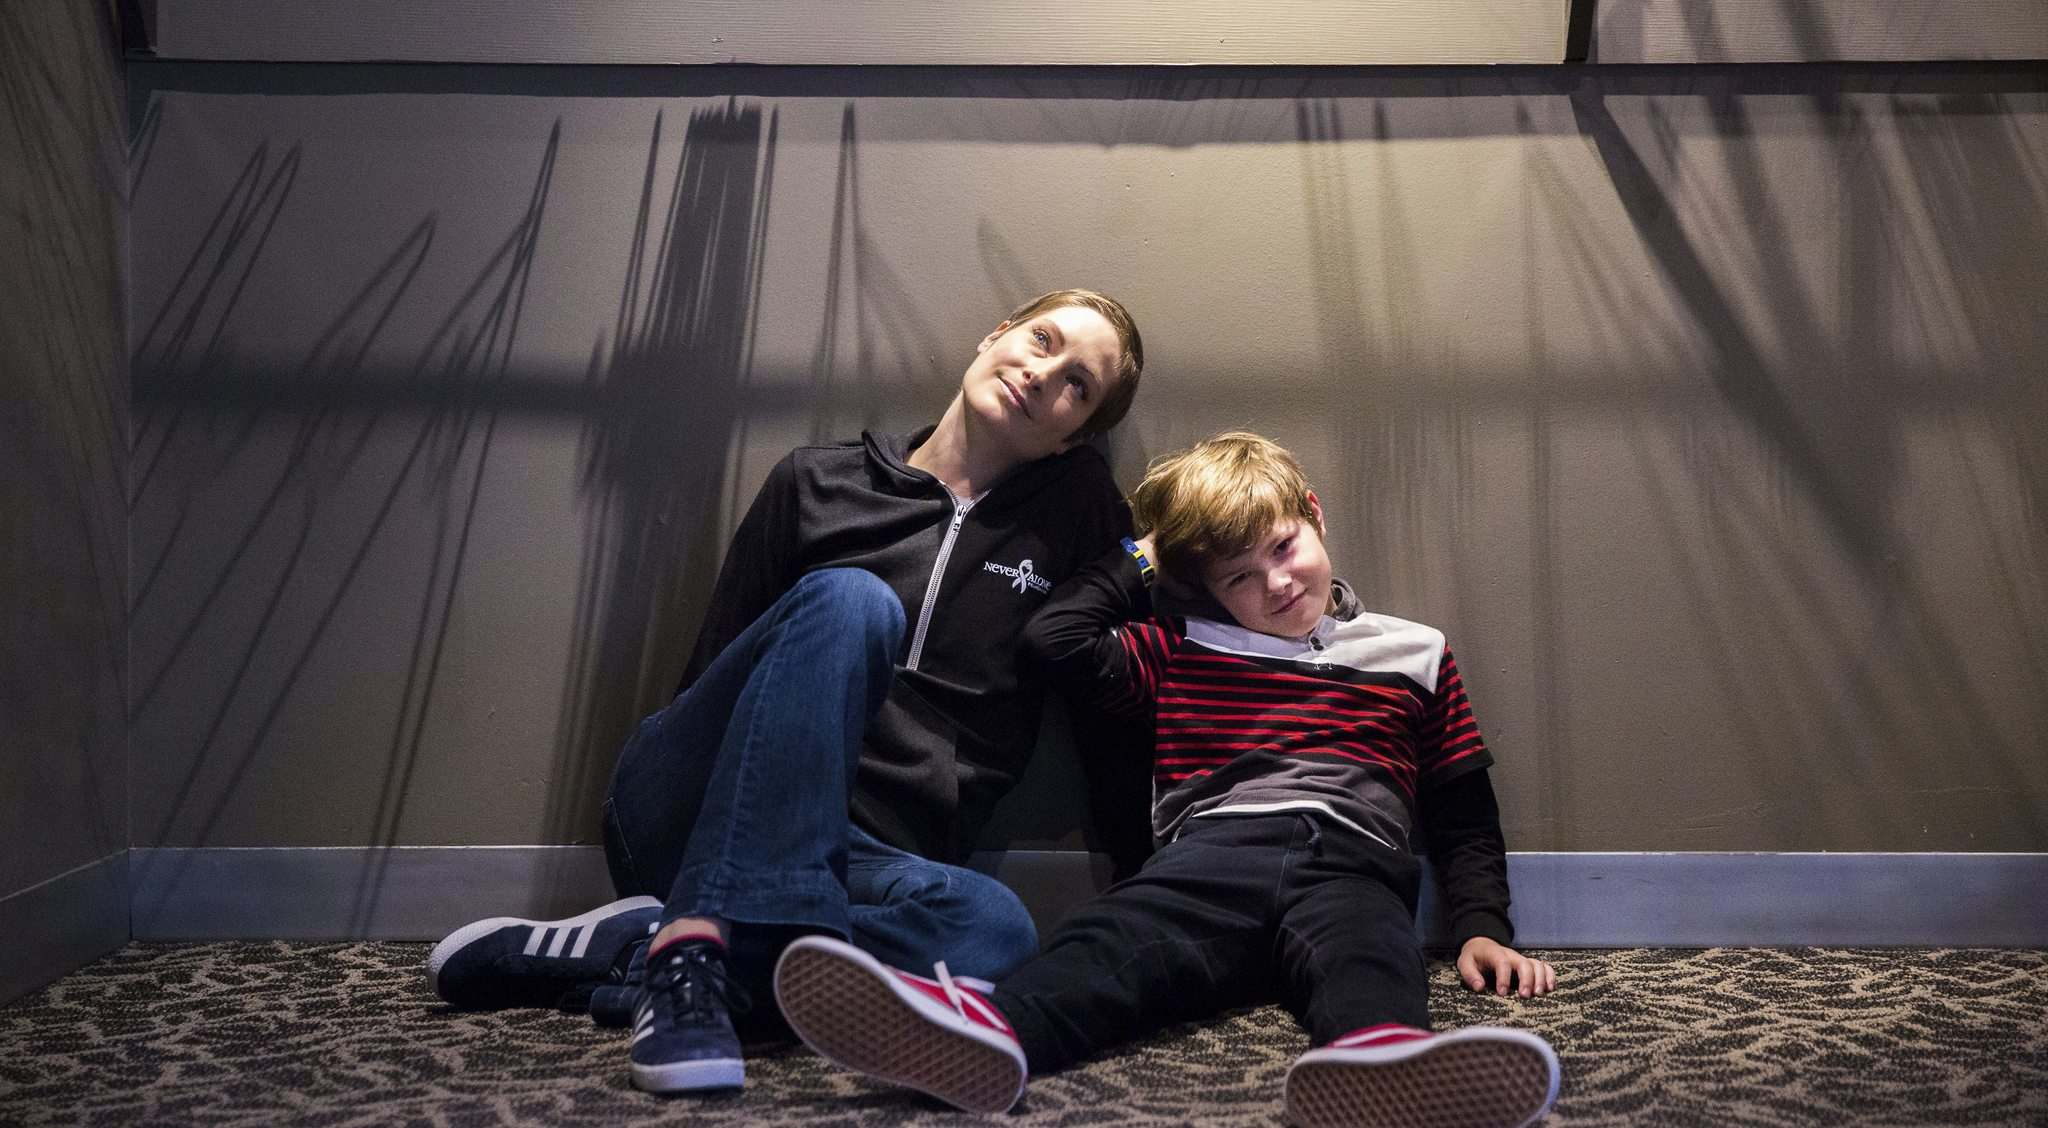 Catherine Wreford portrays the most mature version of the character Alison, and her son, Elliot Ledlow, plays Alison's younger brother in the Royal MTC production Fun Home.